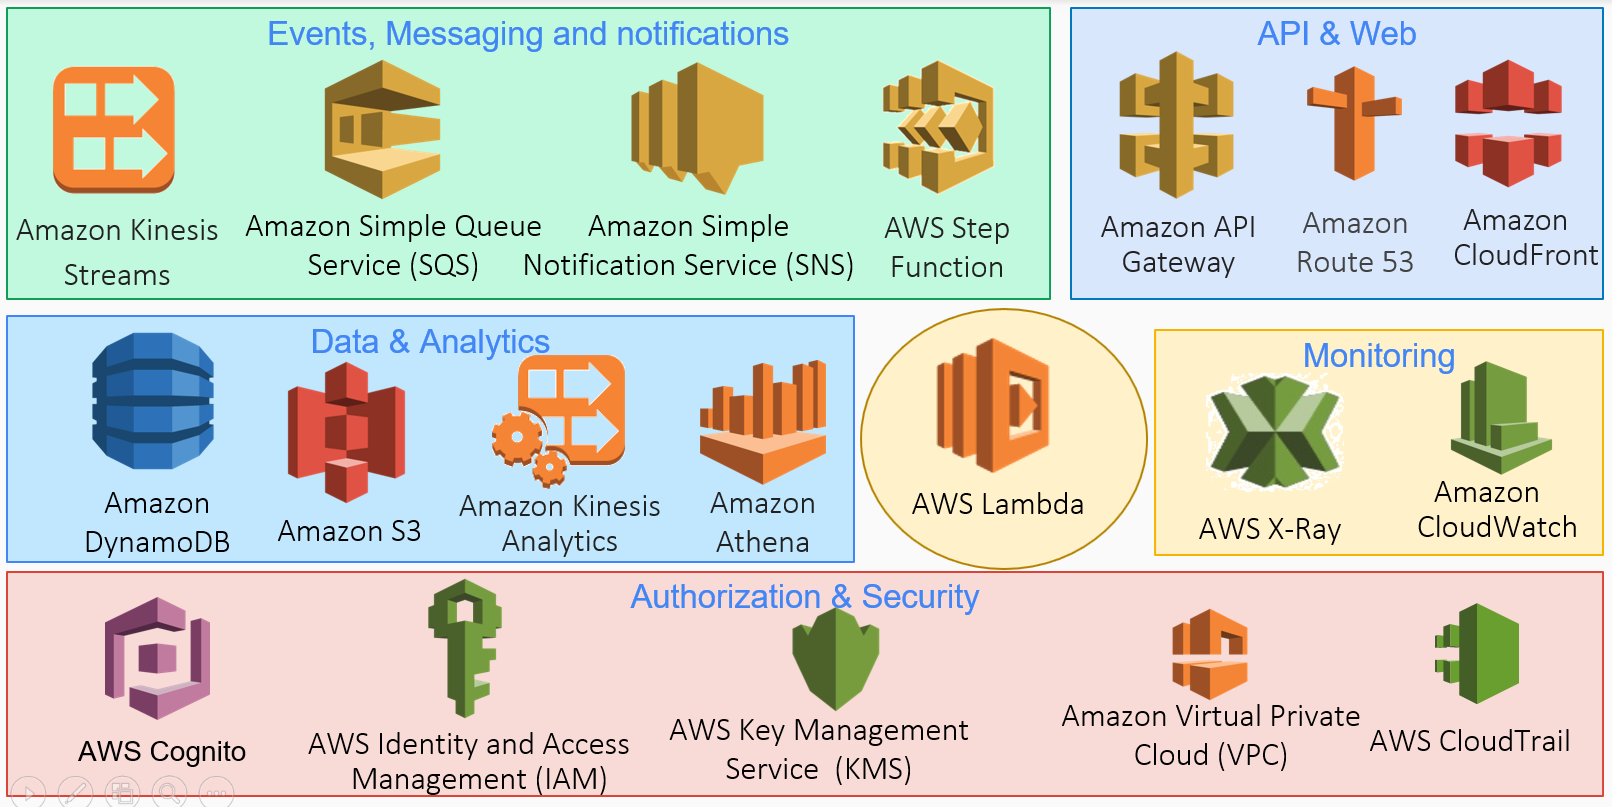 Serverless computing in AWS - Building Serverless Microservices in